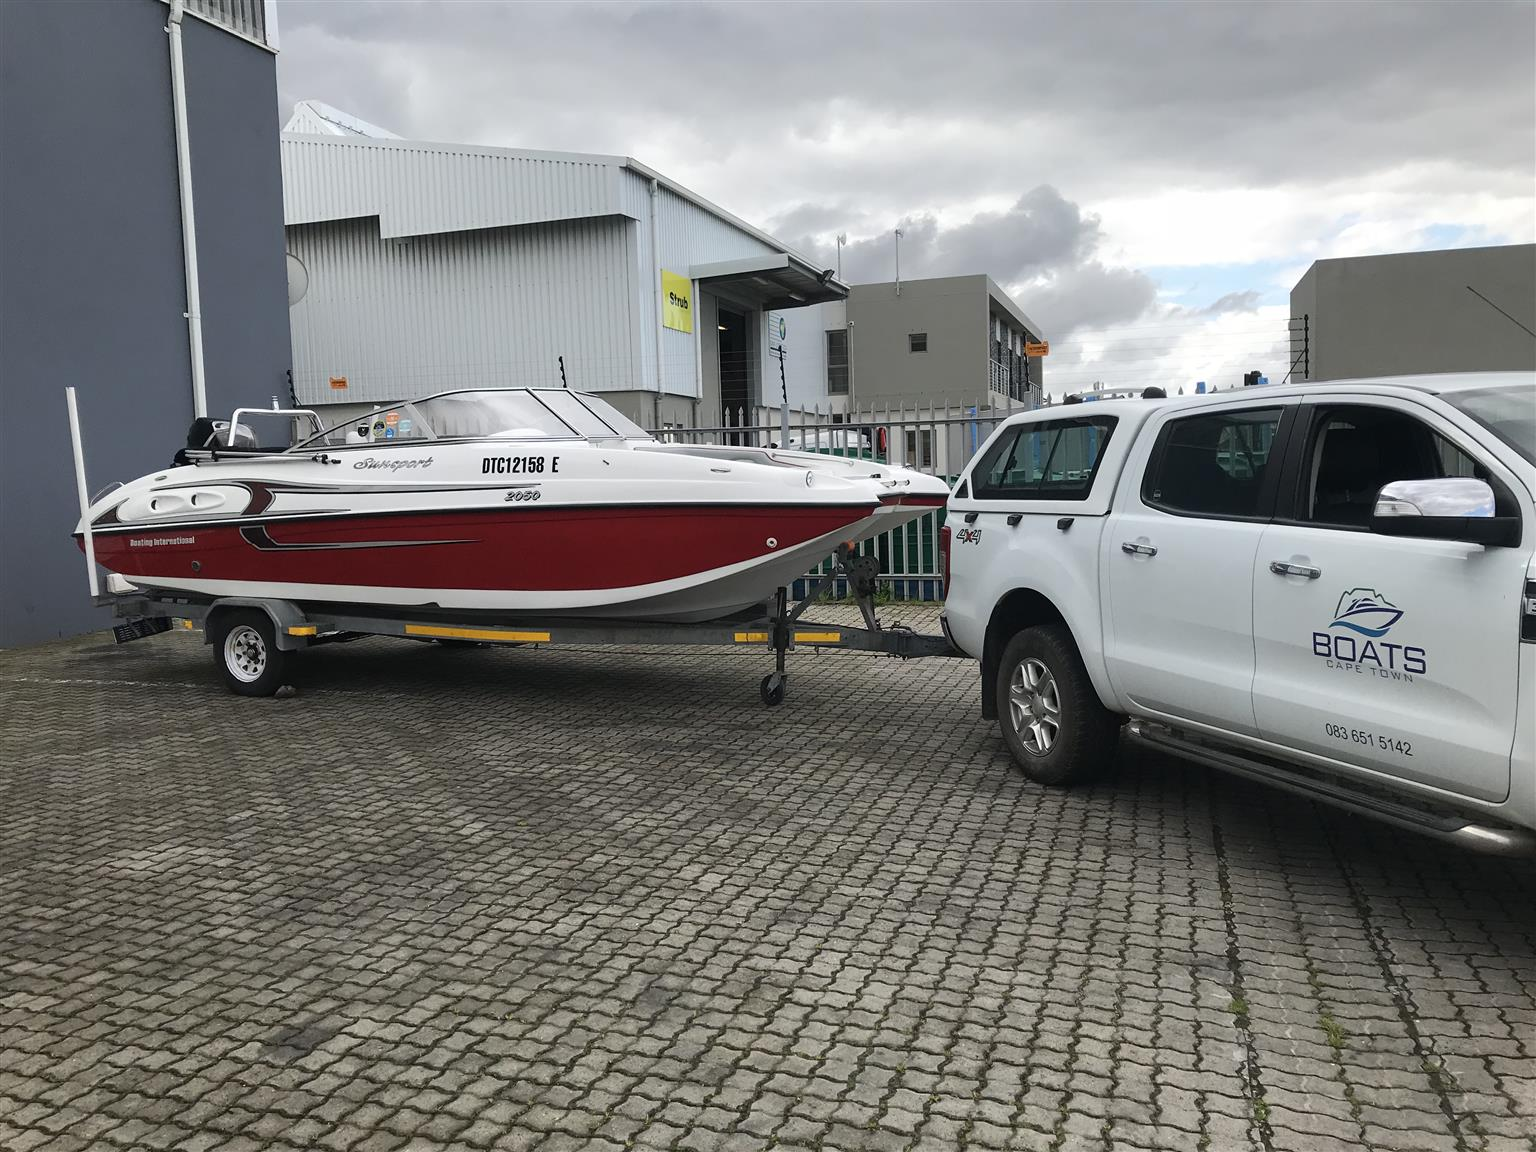 Transport boats, trailers and general goods